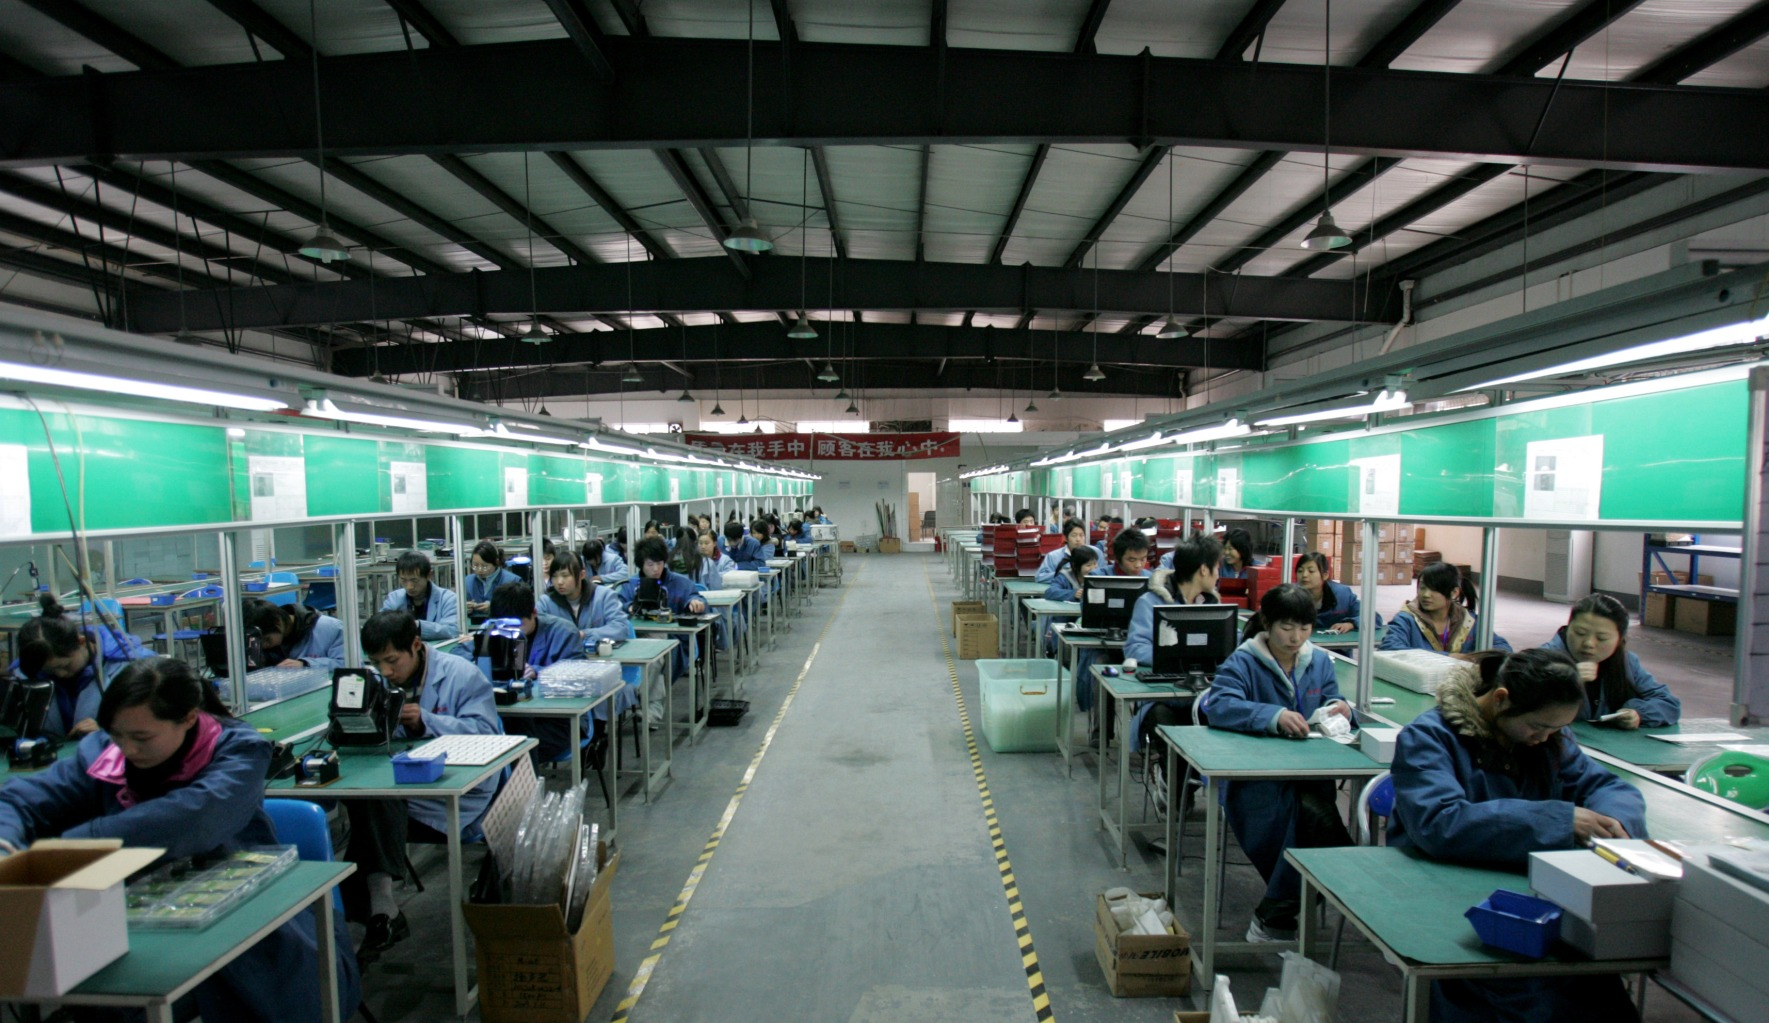 Chengdu: According to China Daily, Chengdu will soon produce 70  percent of Apple's iPads -- some 40 million tablets. Here, Chengdu factory workers labor on a cell-phone production line in February 2009. The global financial crisis threatened China's employment balance as demand for export products dropped, but demand has picked up once again.